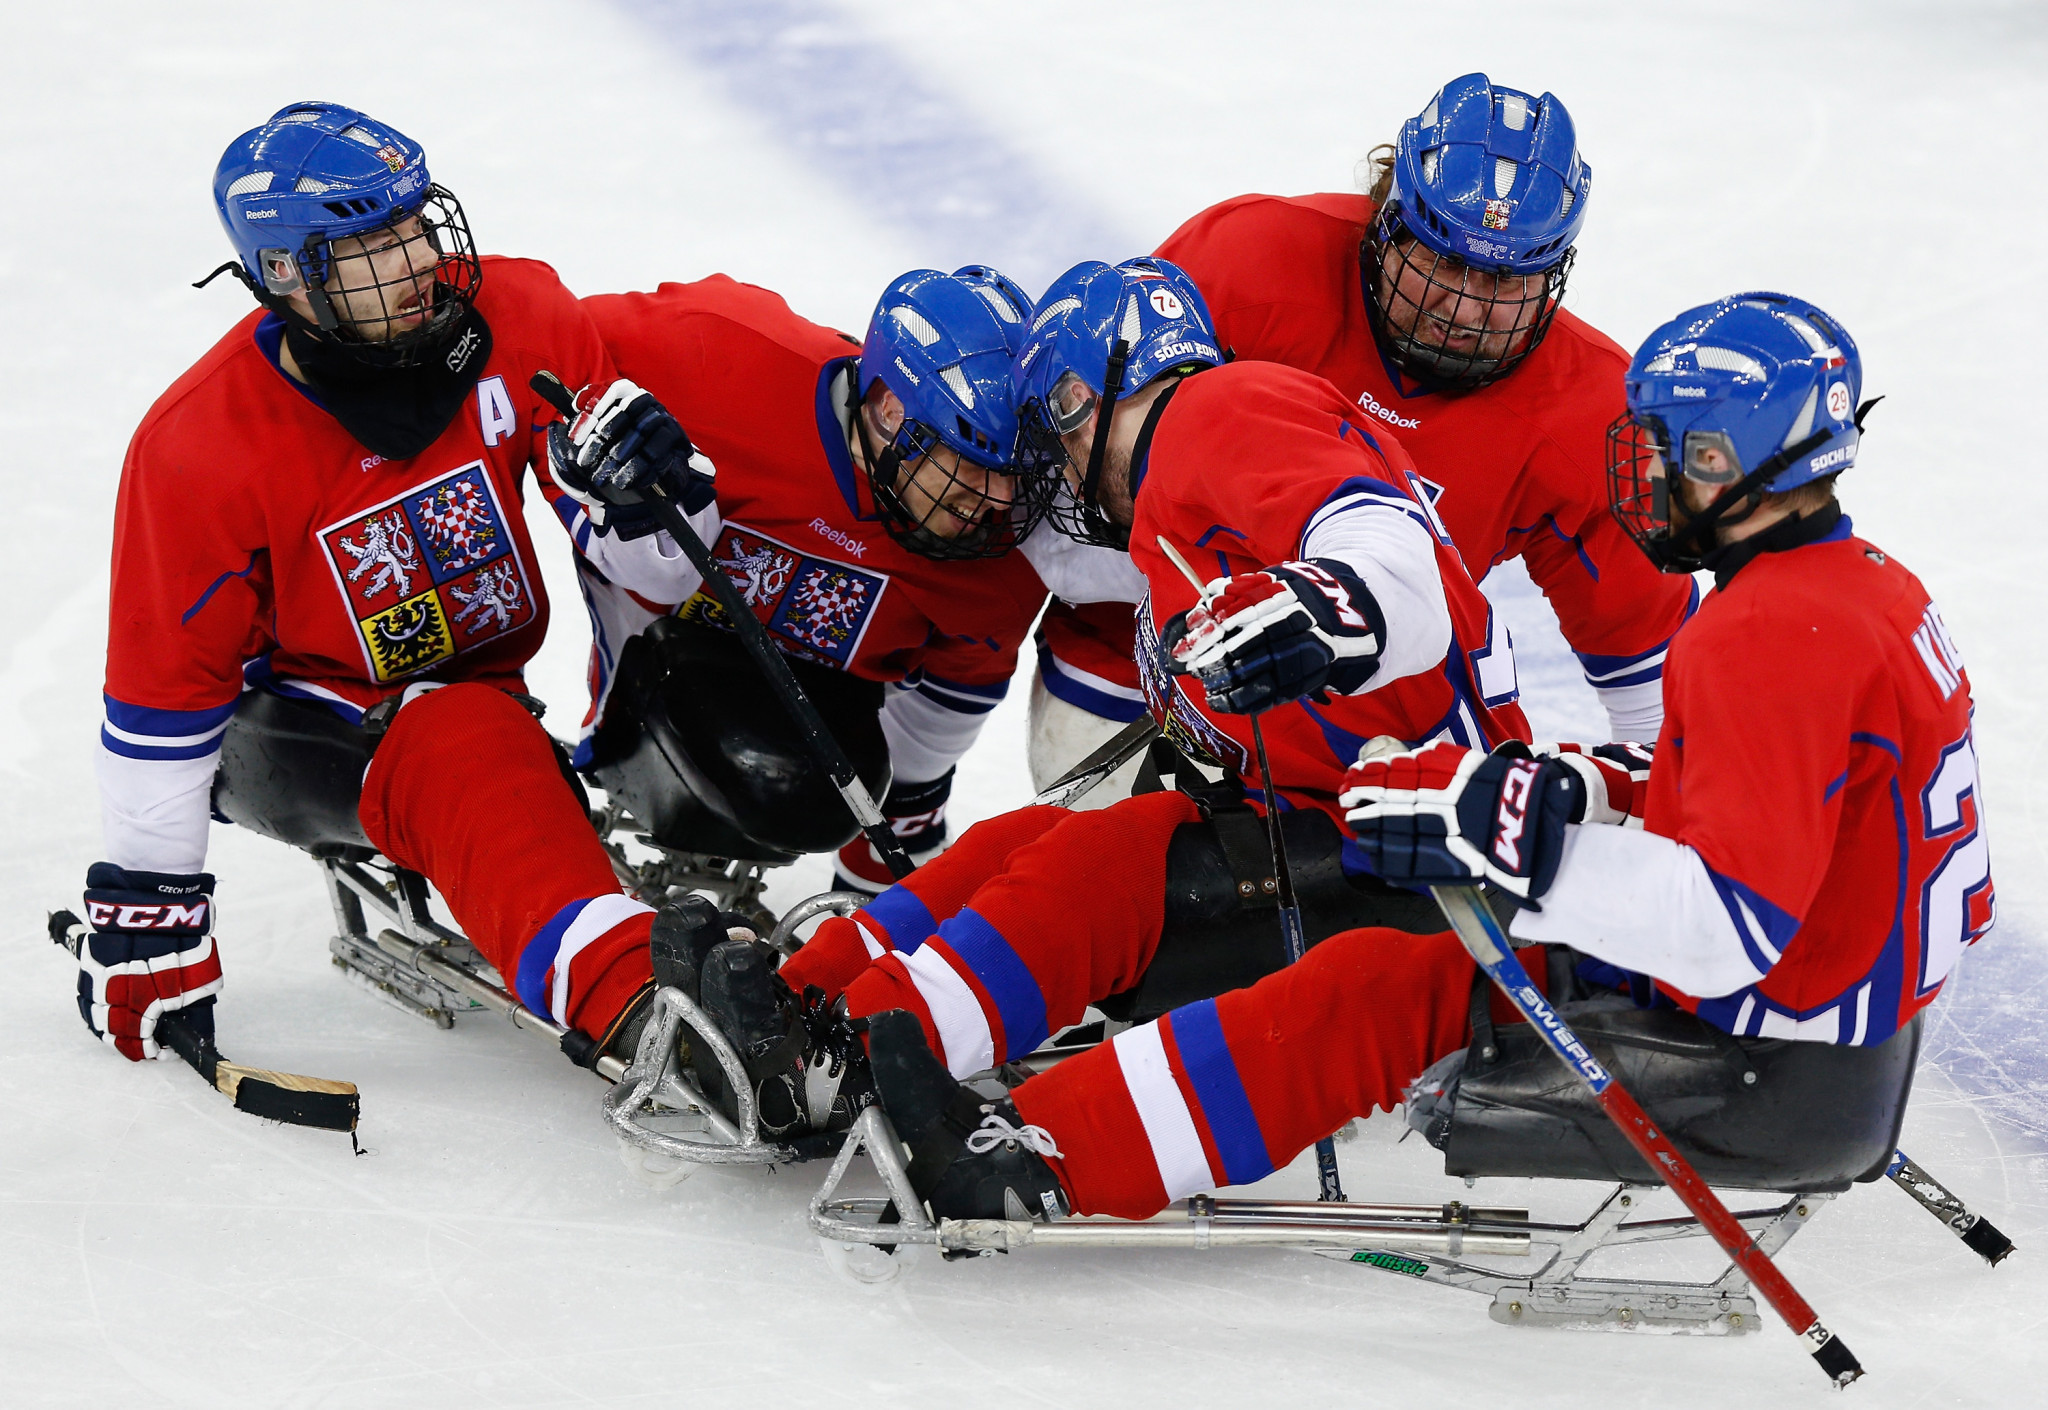 Ostrava to host 2019 World Para Ice Hockey Championships